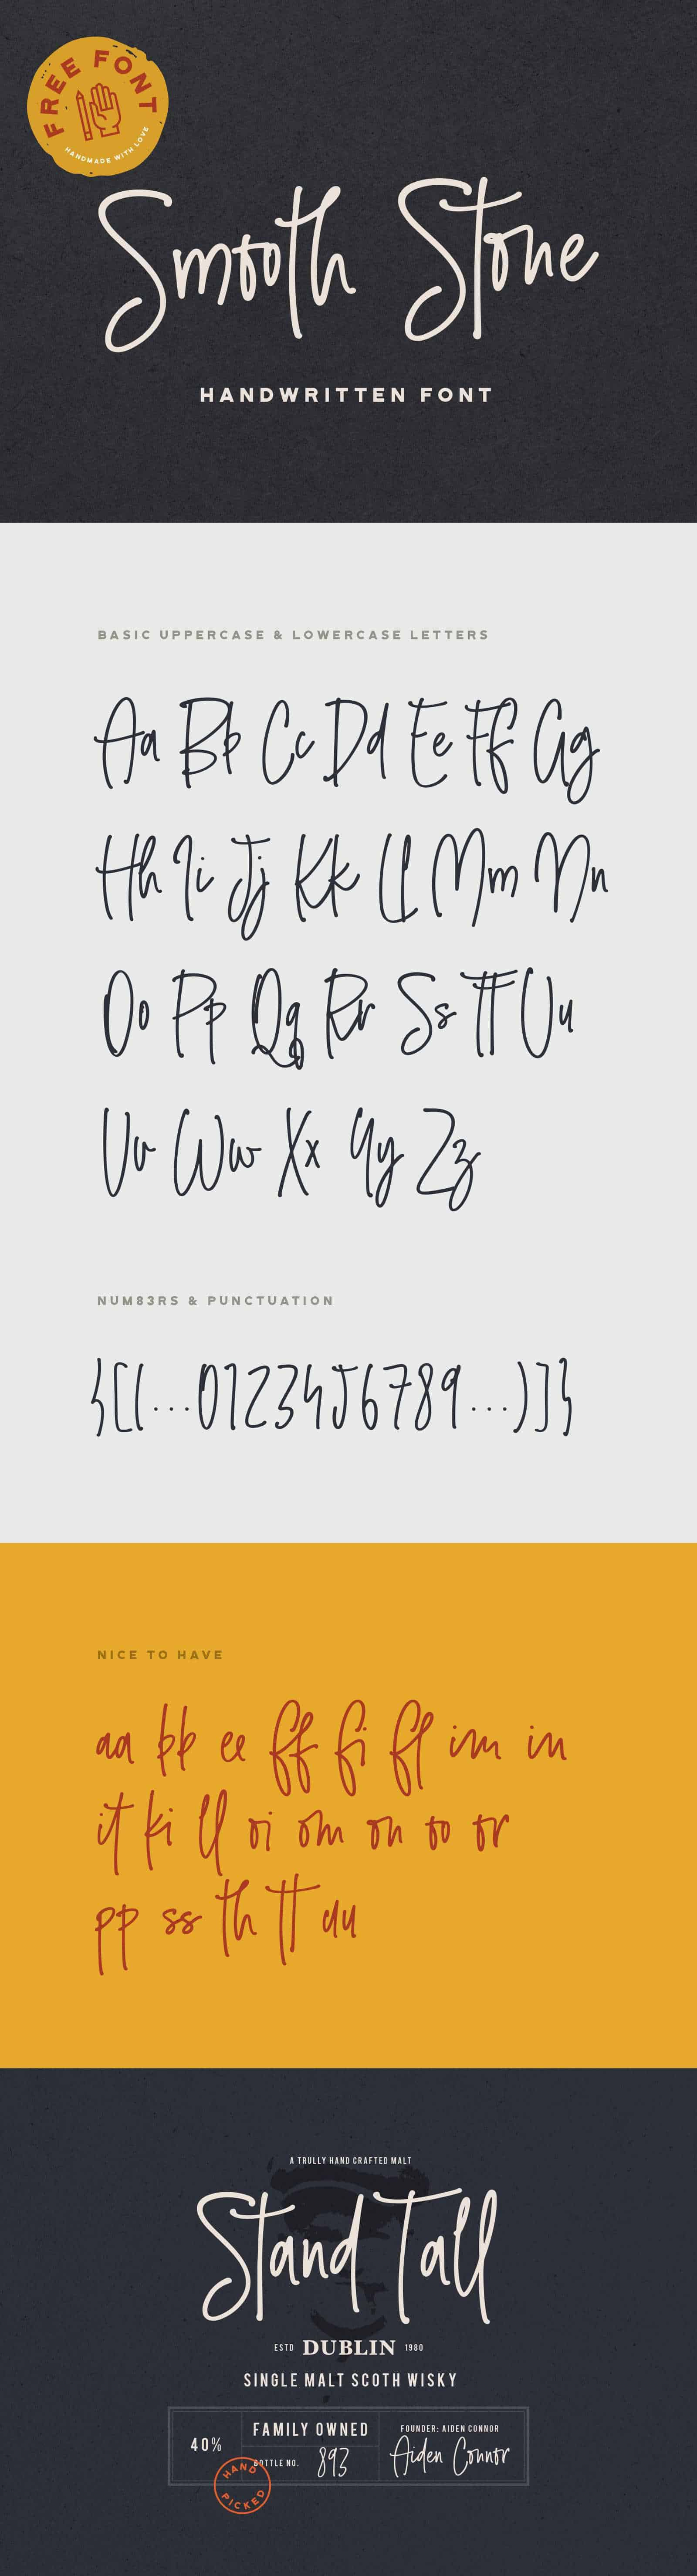 smooth-stone-script-font